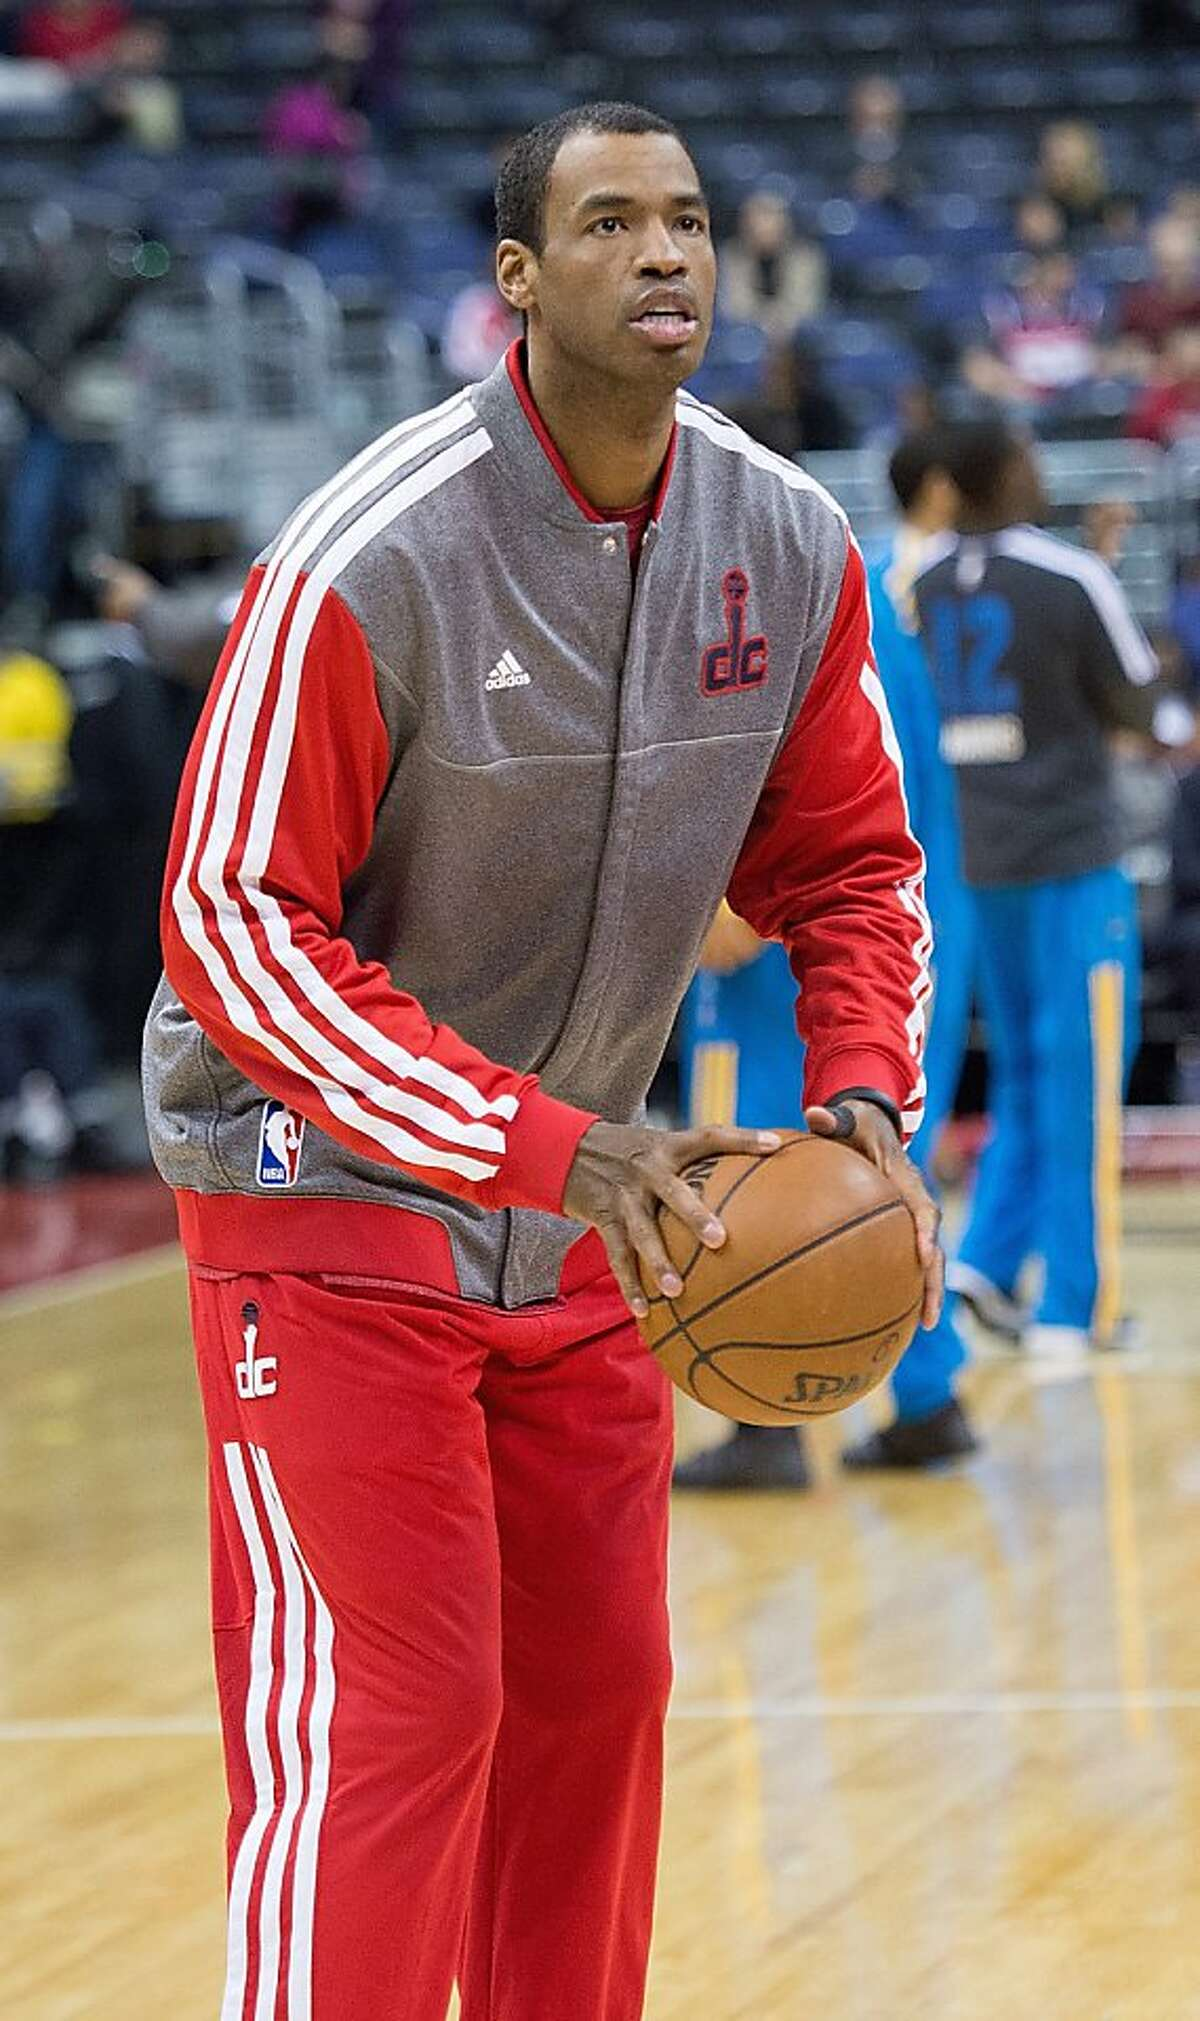 Washington Wizards center Jason Collins (98) warms up before their game against the New Orleans Hornets.